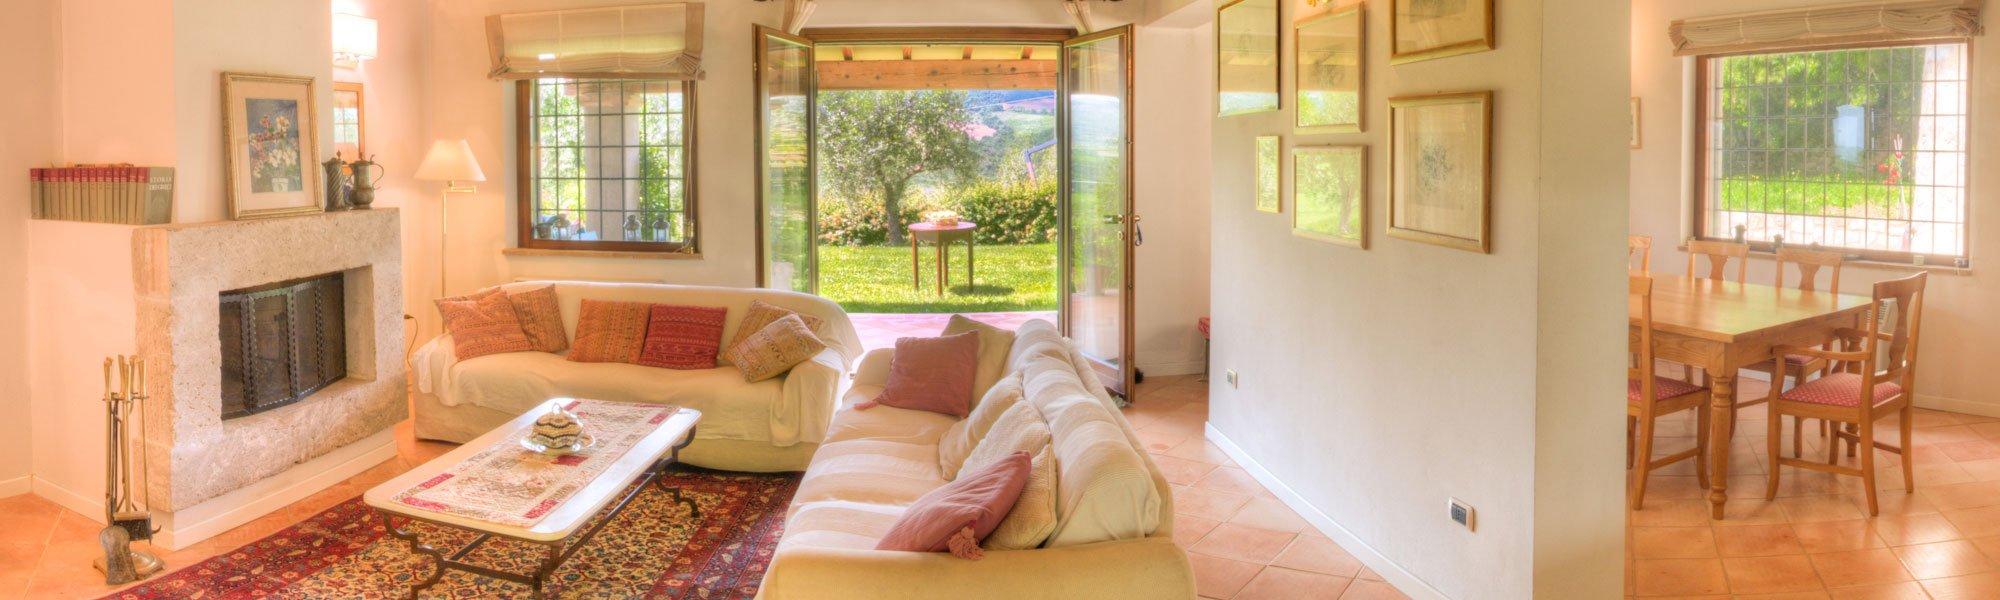 Villa Colibrì in Umbria - Living